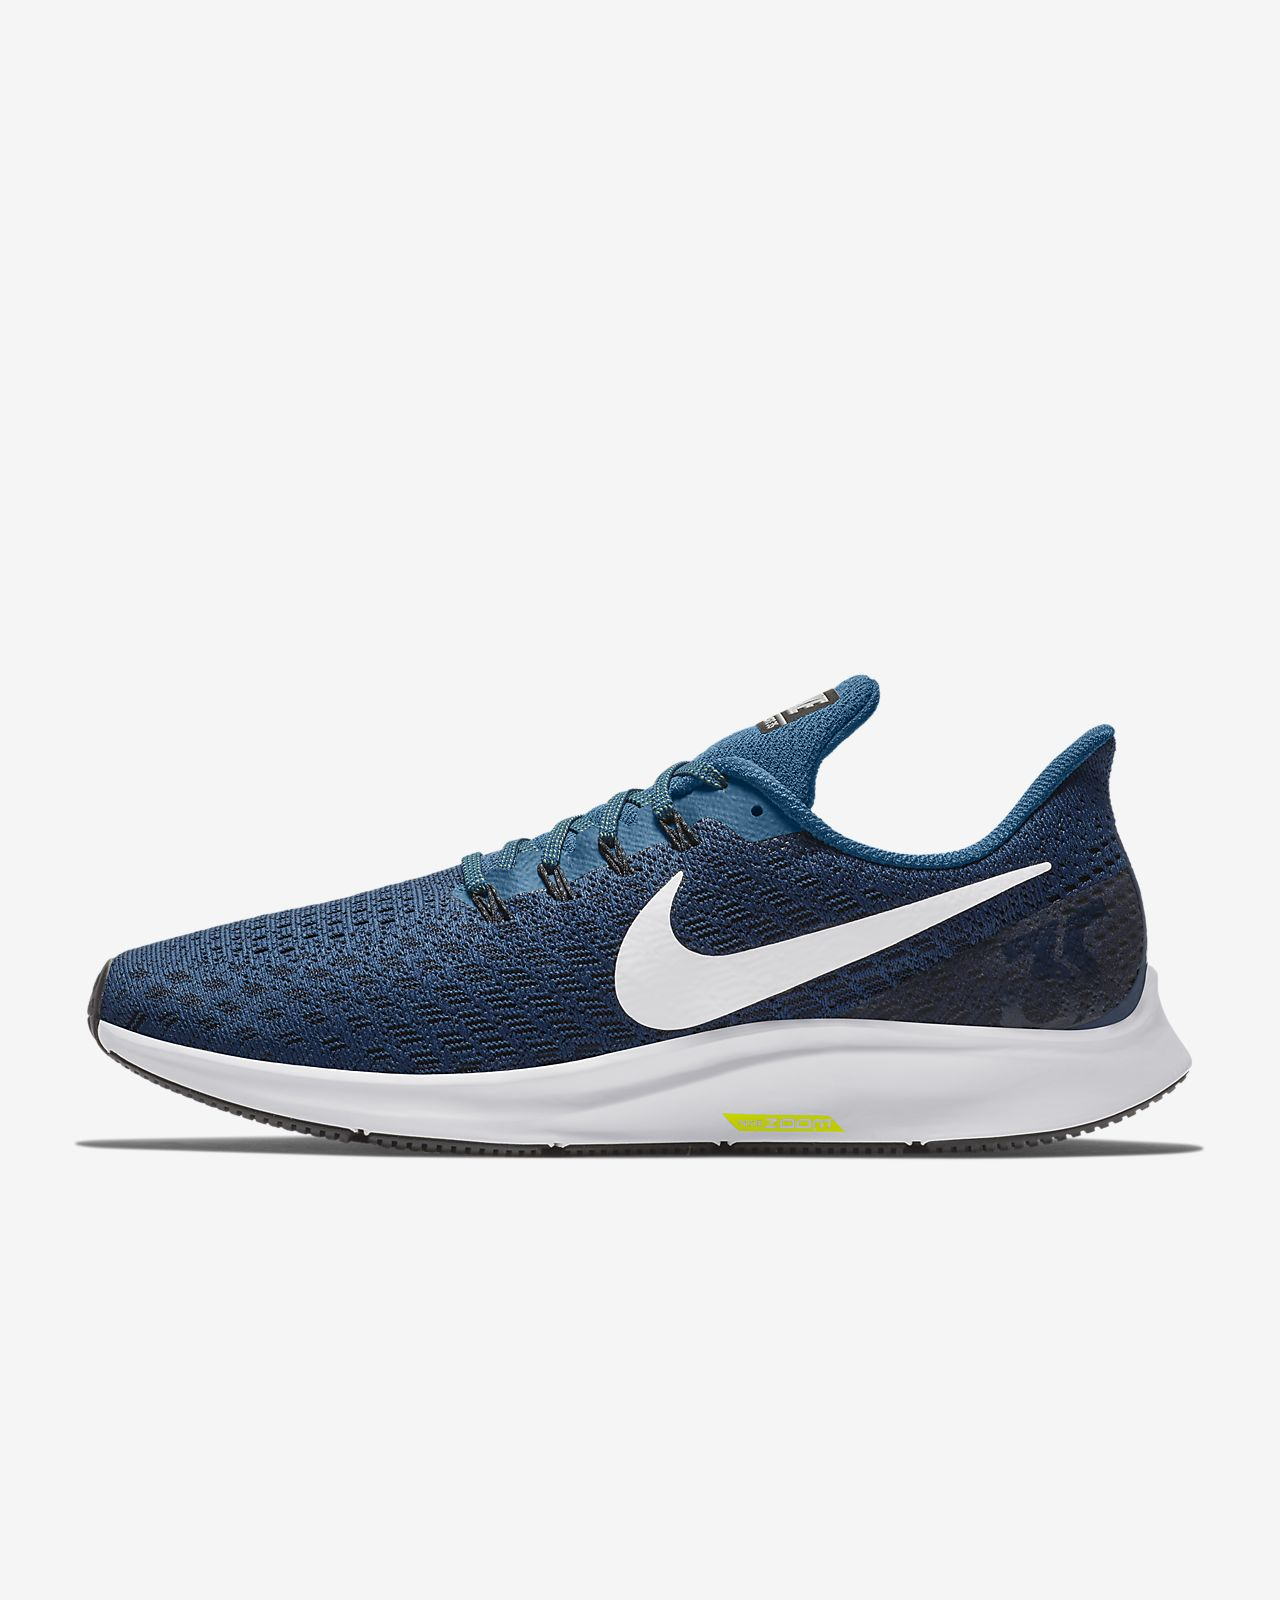 reputable site a6edd 78a57 ... Nike Air Zoom Pegasus 35 Men s Running Shoe